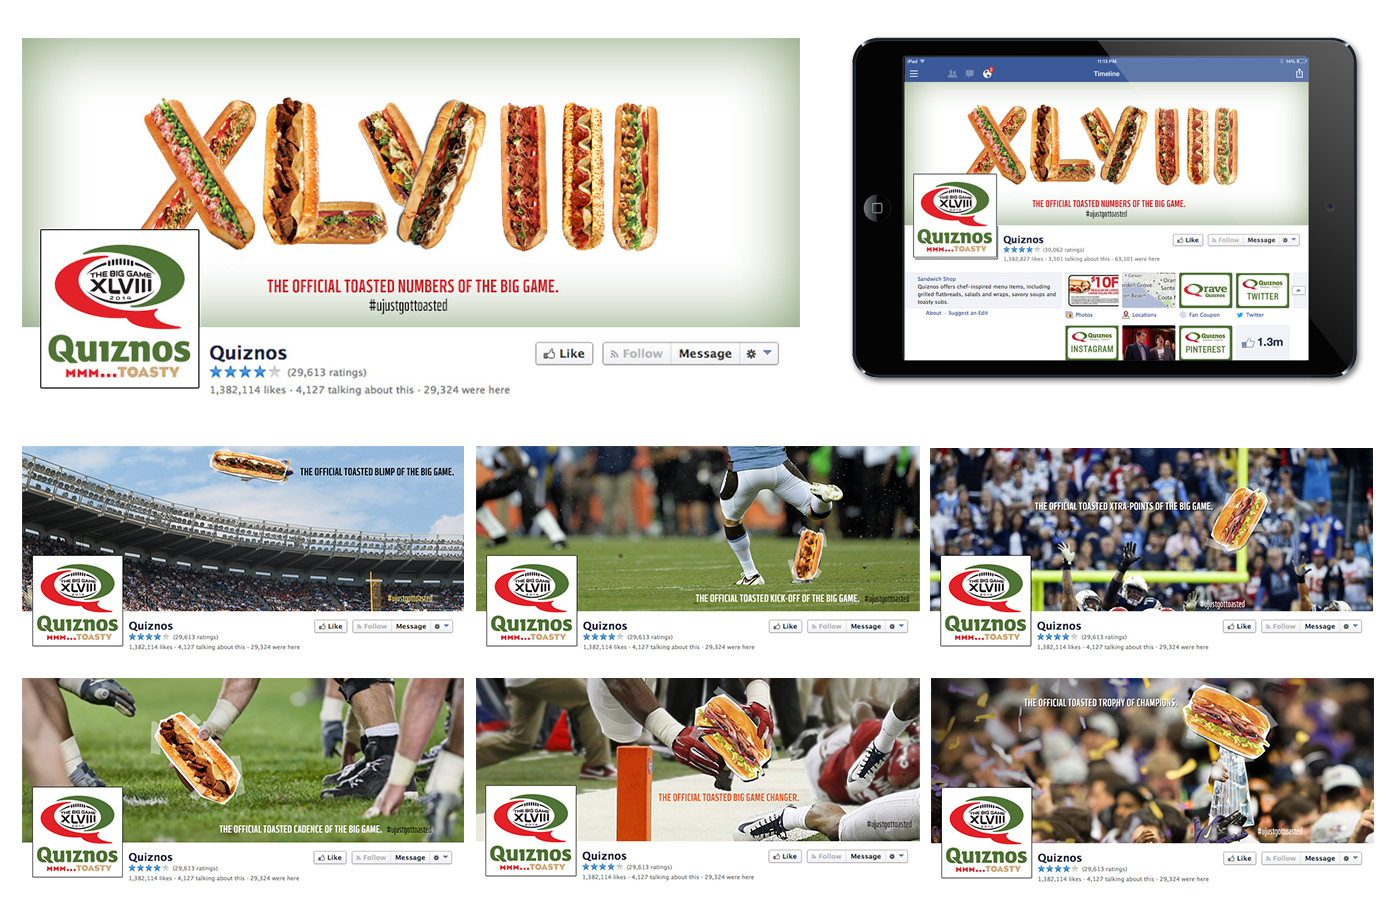 Superbowl XLVIII Facebook Feed